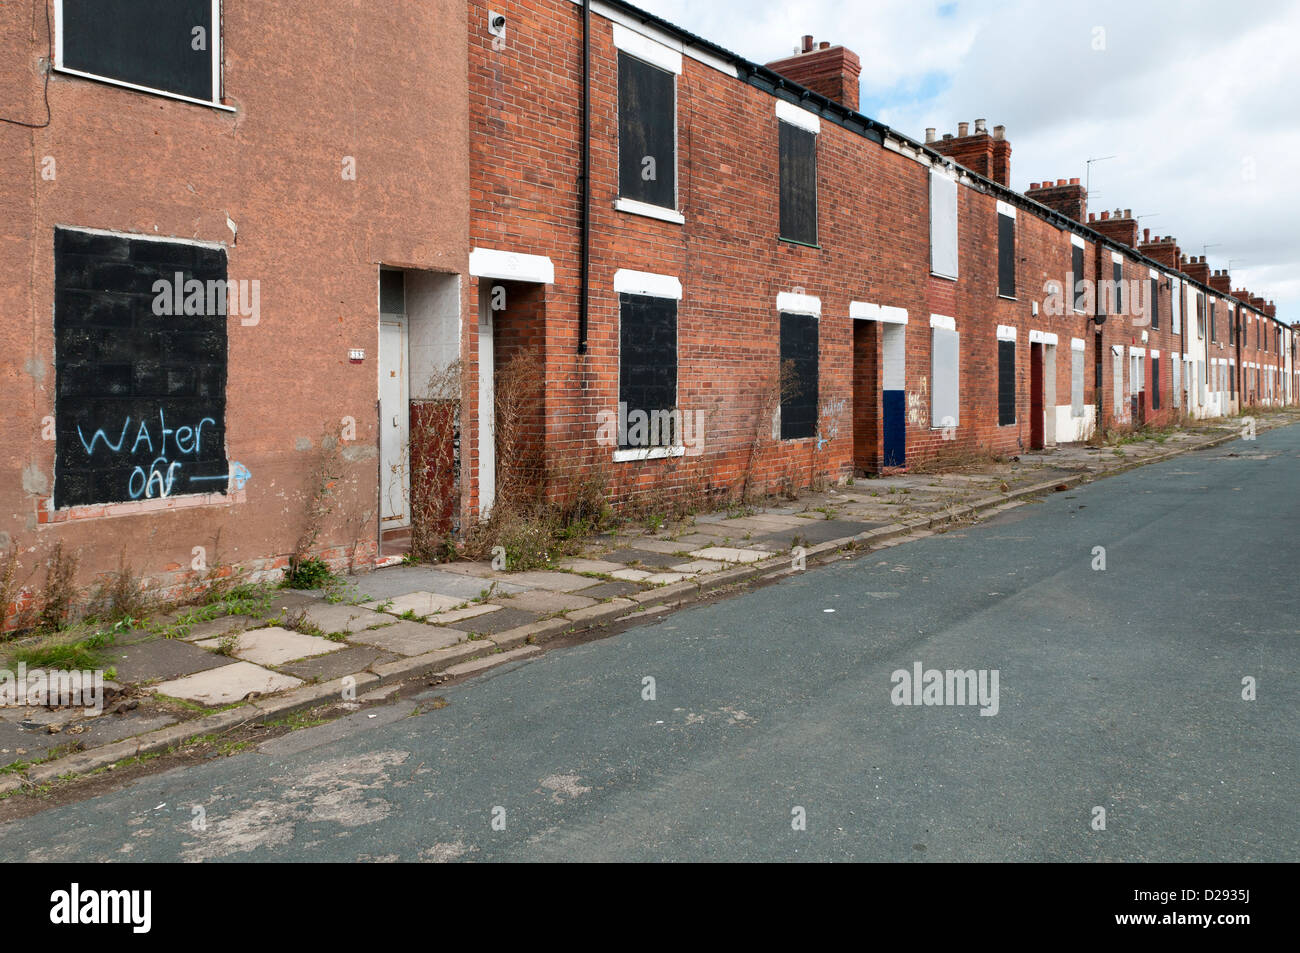 Cecil Street in Kingston Upon Hull, an example of pre war housing before redevelopment. - Stock Image